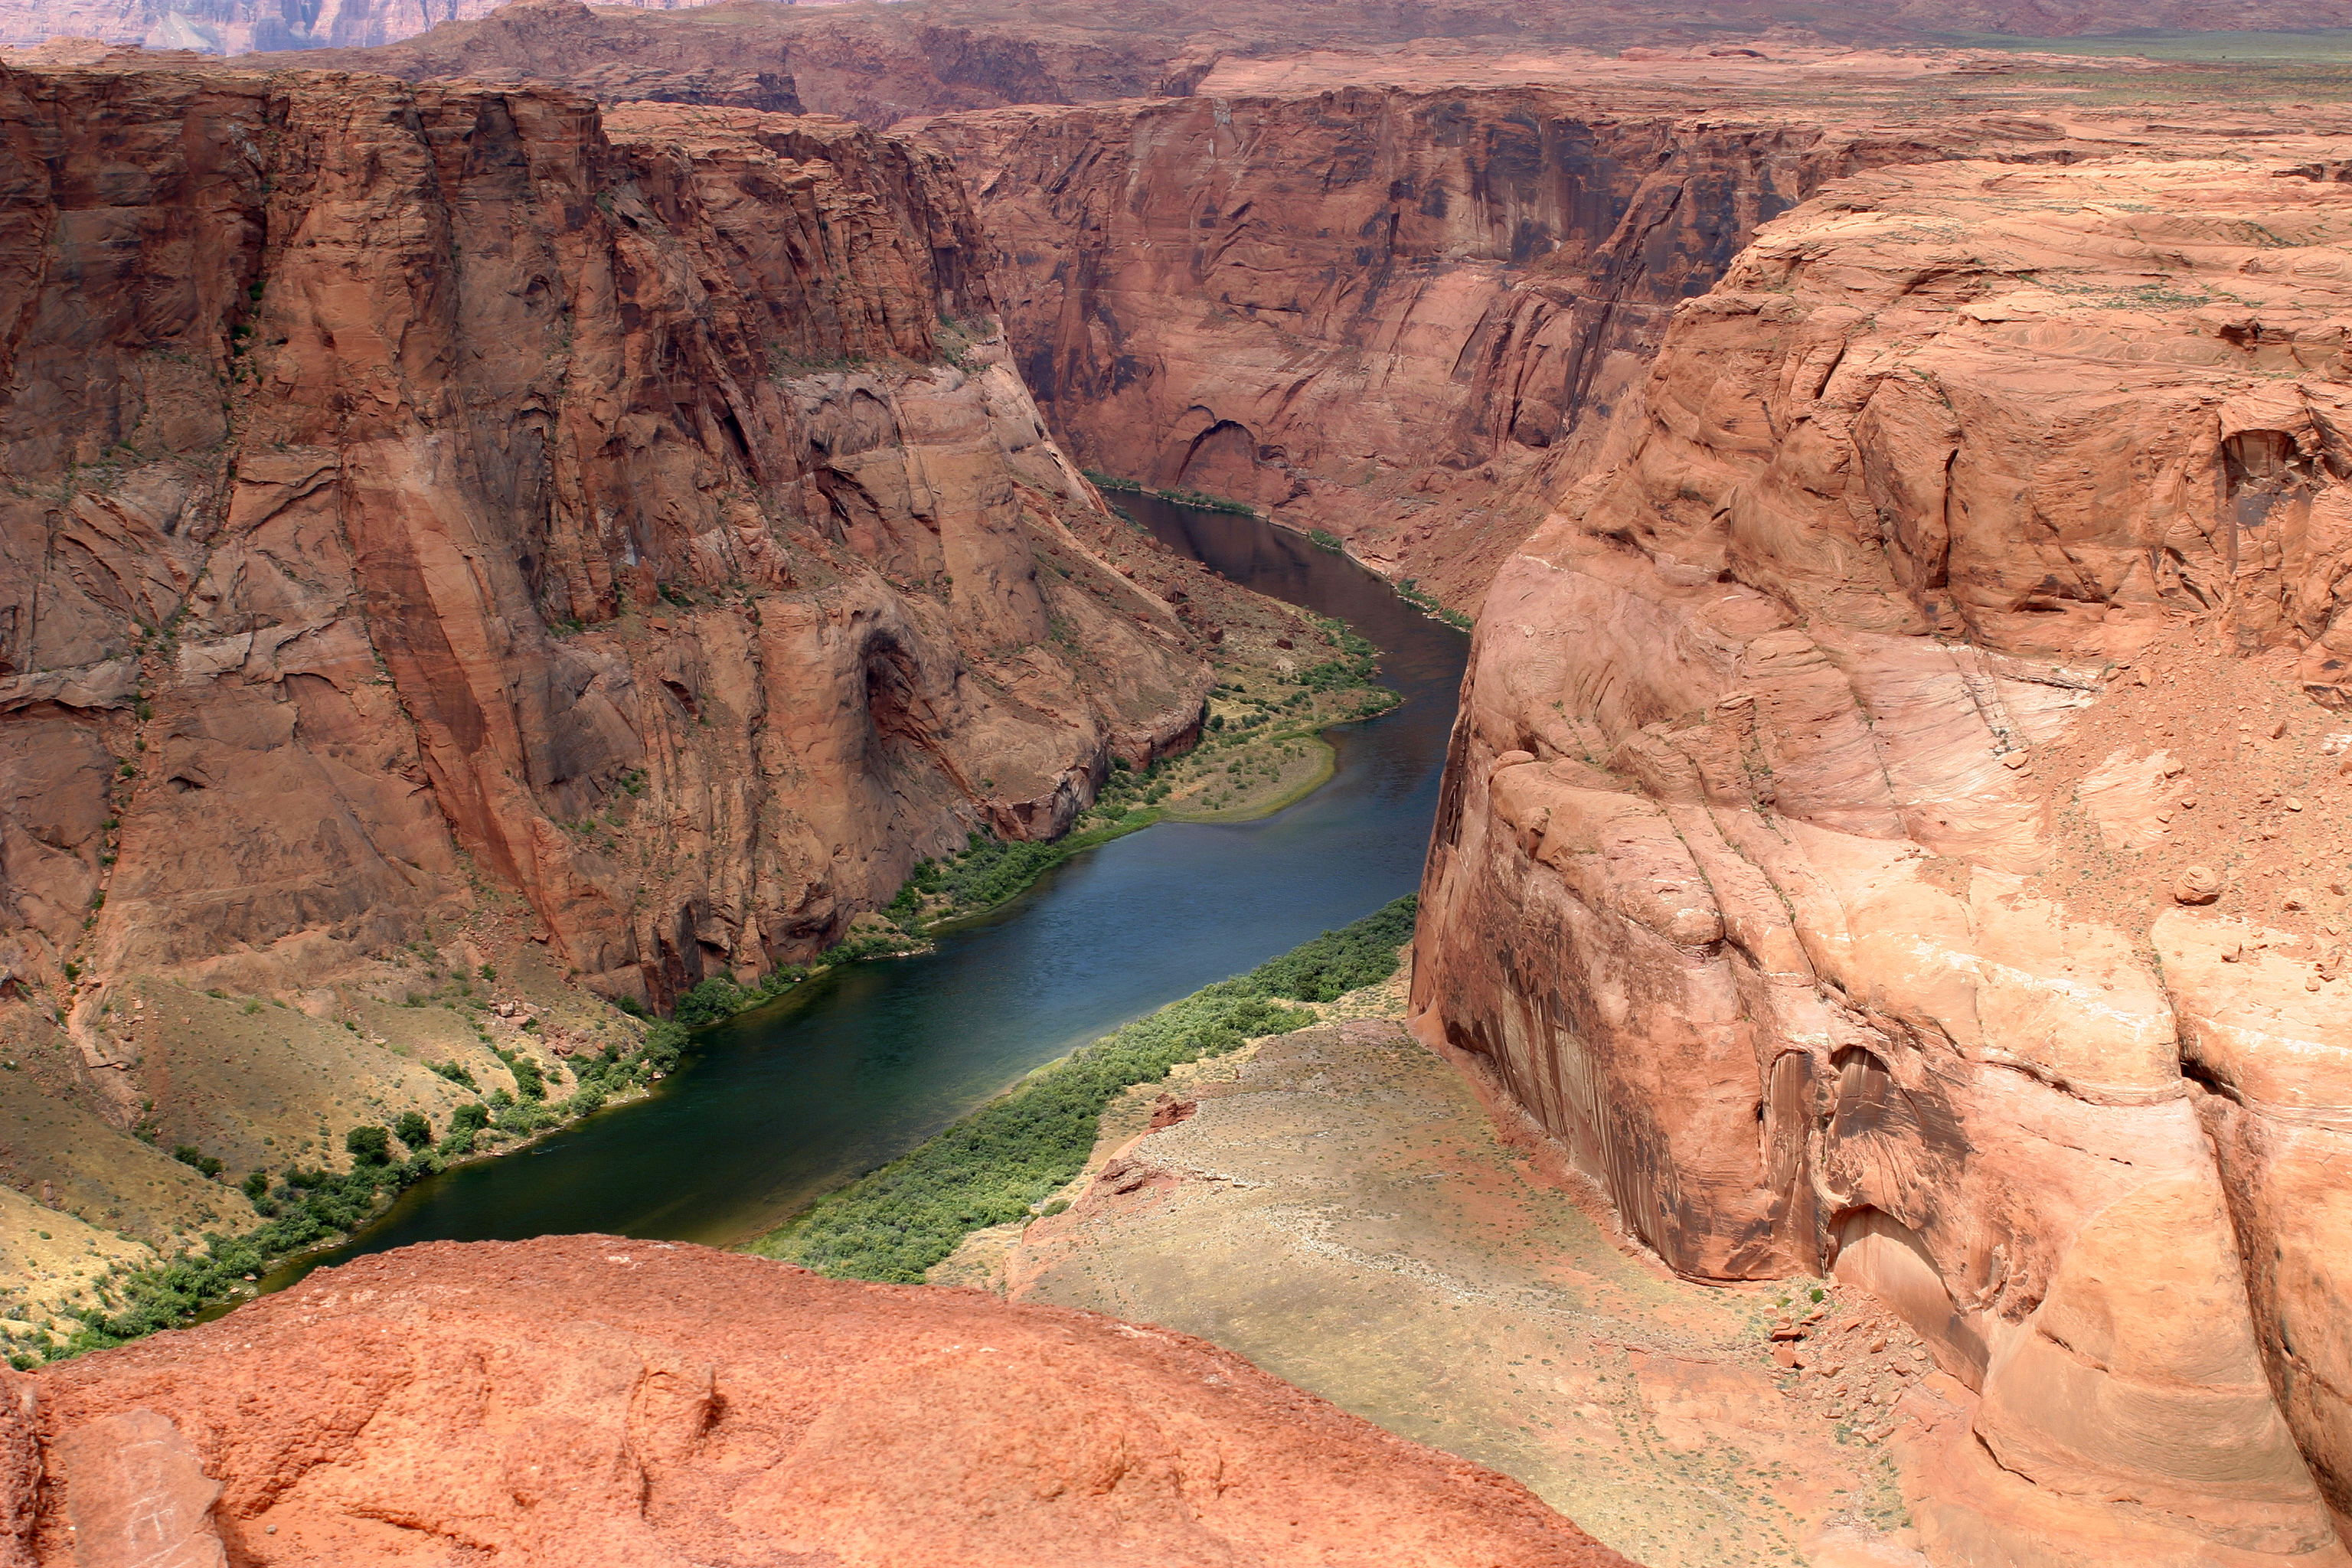 Archivo:Colorado River edit.jpg - Wikipedia, la enciclopedia libre